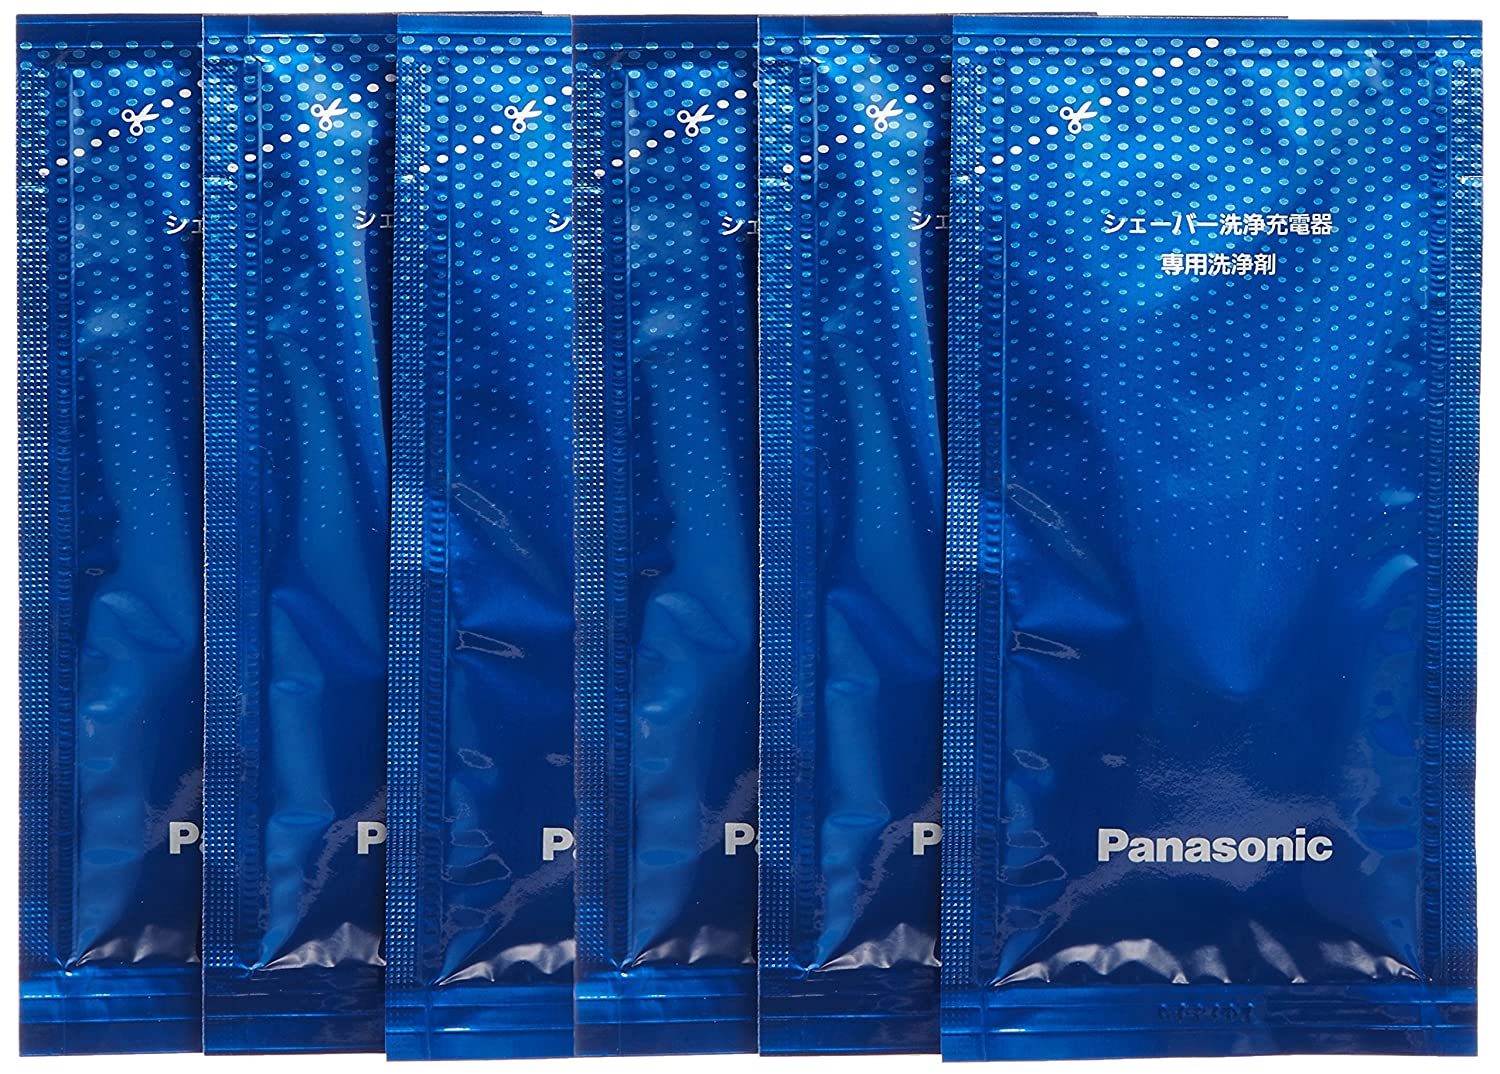 [Bulk buying set] Panasonic LAMDASH shaver cleaning charger dedicated cleaning agents -6 pieces- (japan import) by Panasonic ES-4L06A